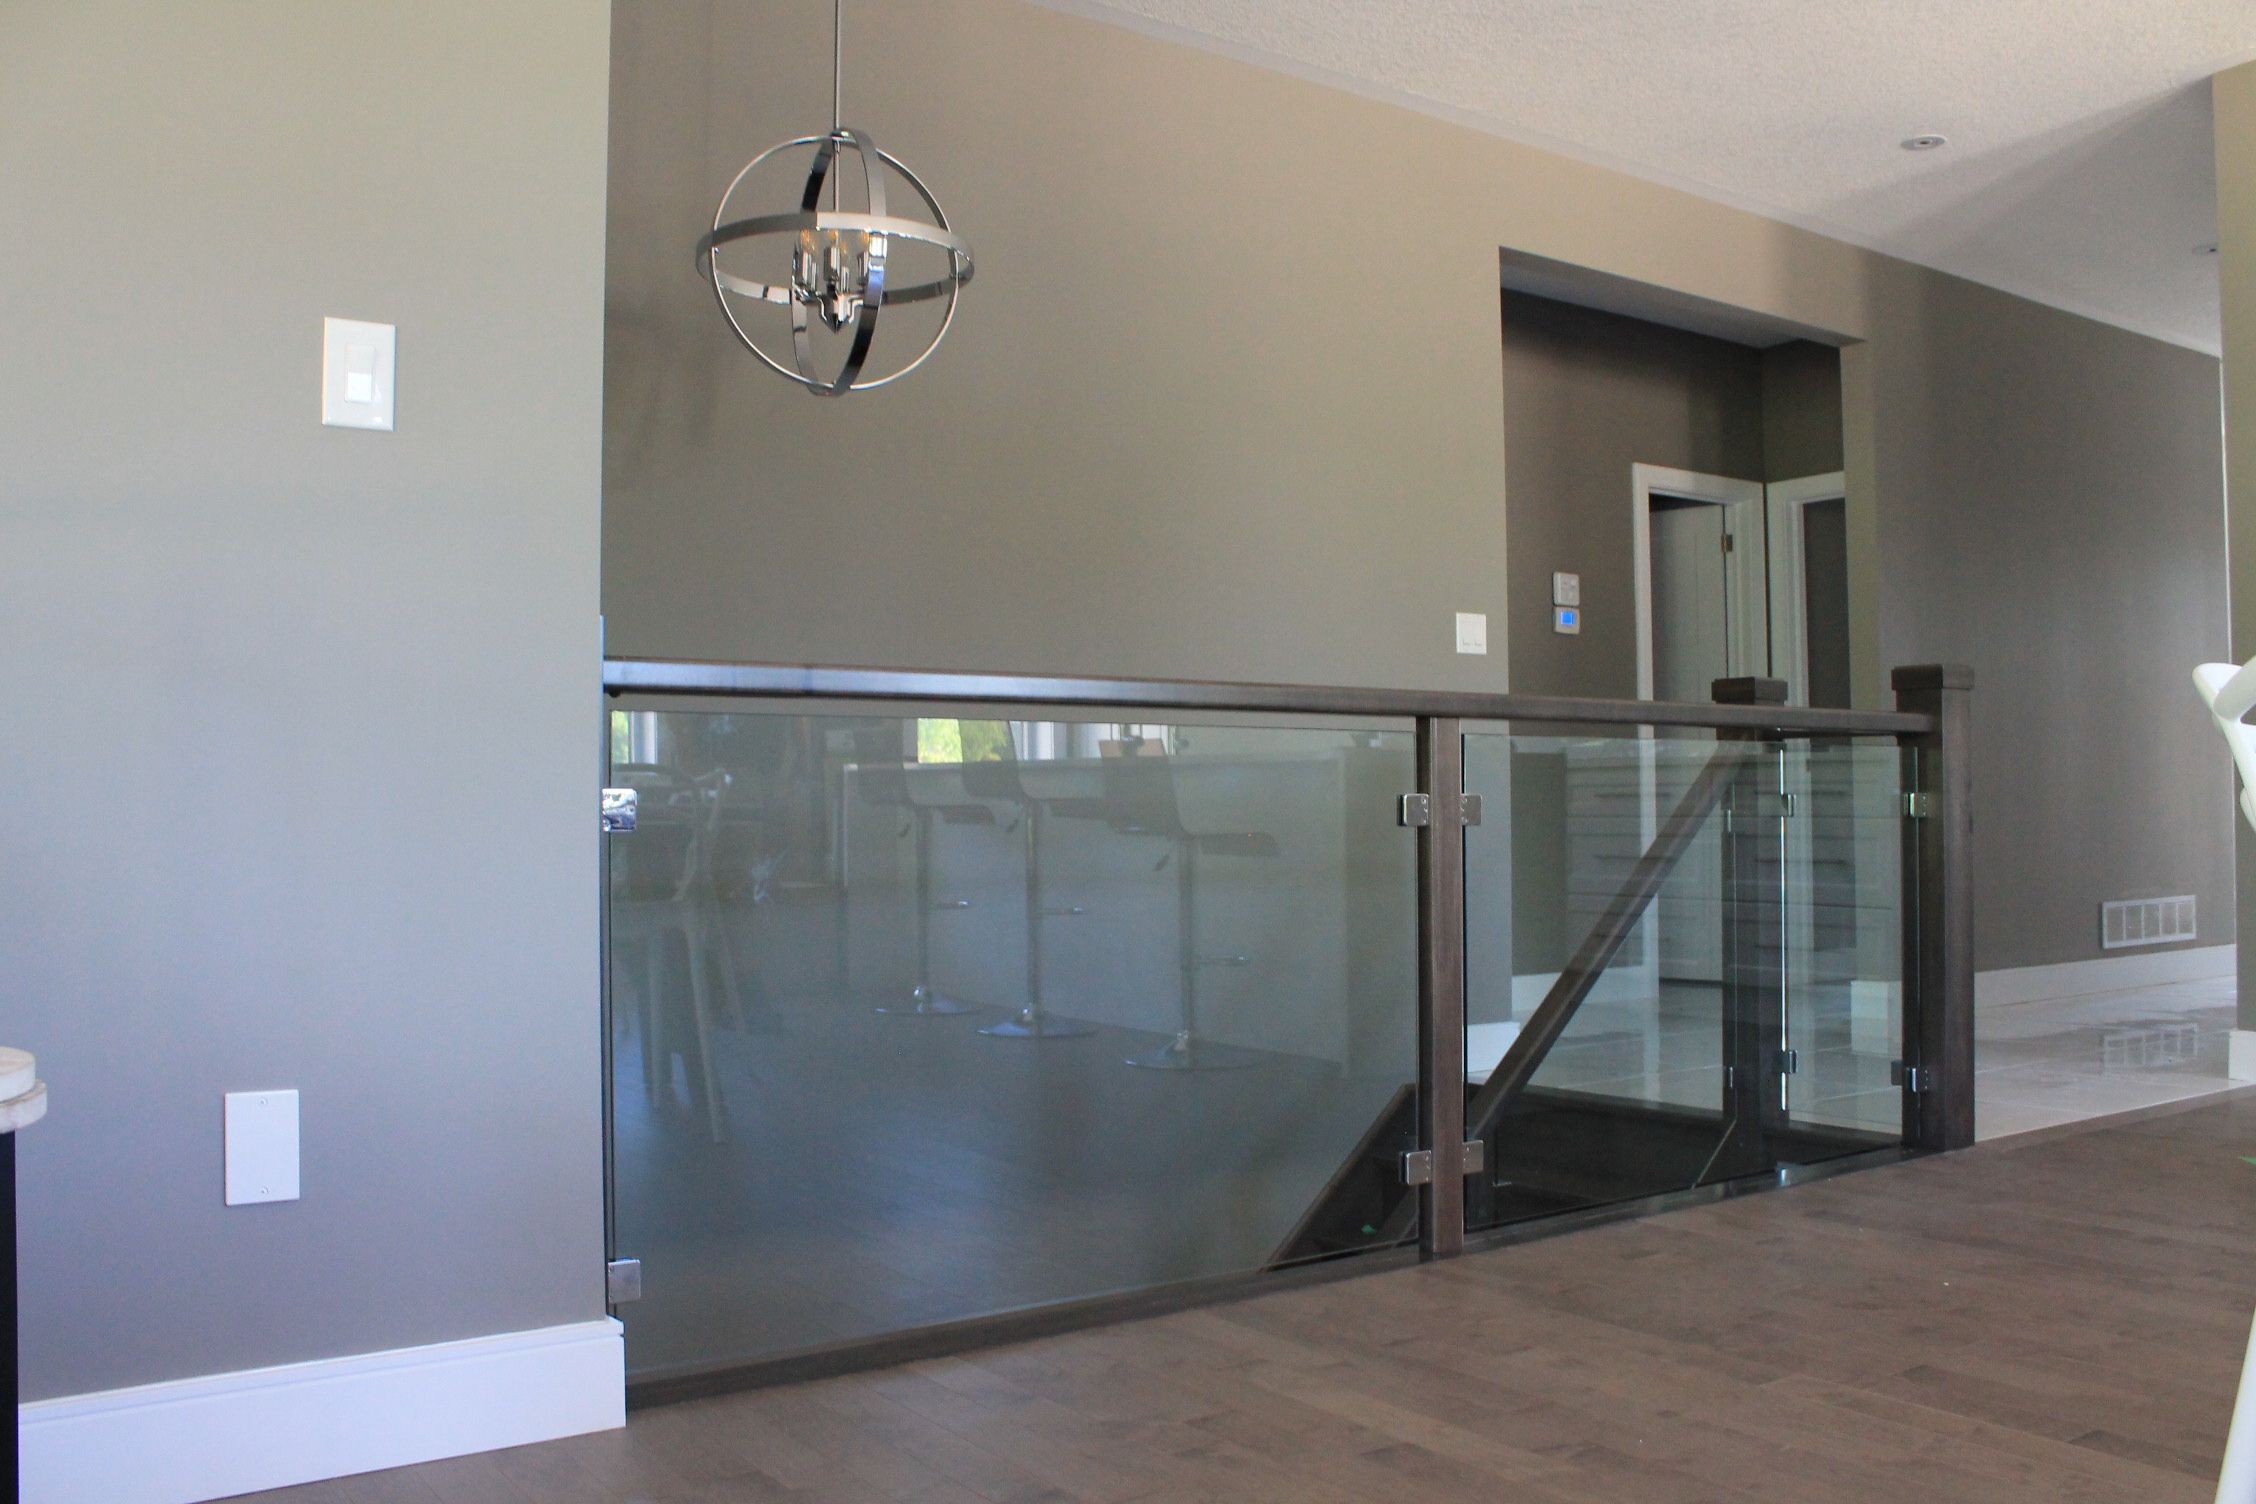 10Mm Clear Tempered Glass Stair Railing With Brushed Nickel Clamps | Brushed Nickel Stair Railing | Horizontal | Farmhouse | Matte Finish | Light Dark Wood | Hallway